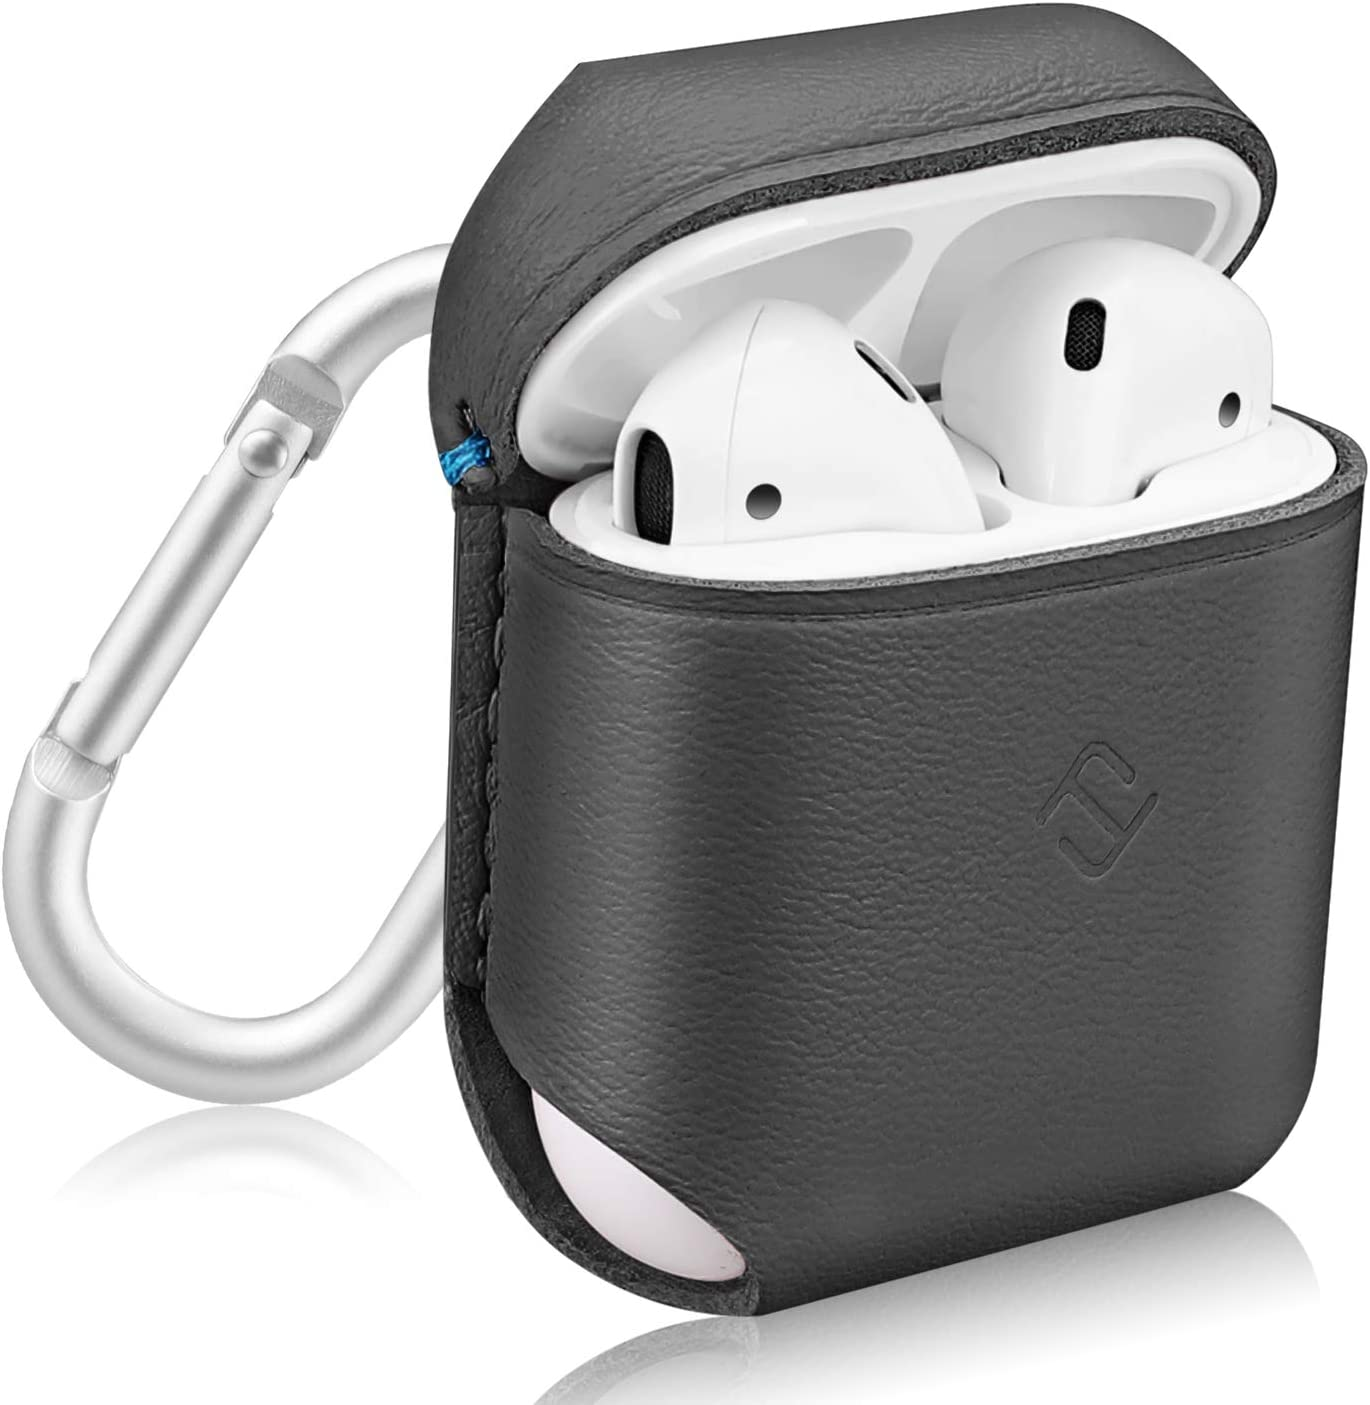 Fintie Genuine Leather Case for AirPods, Slim Fit Protective Cover Skin with Carabiner for AirPods 1 and AirPods 2 Charging Case, Gray